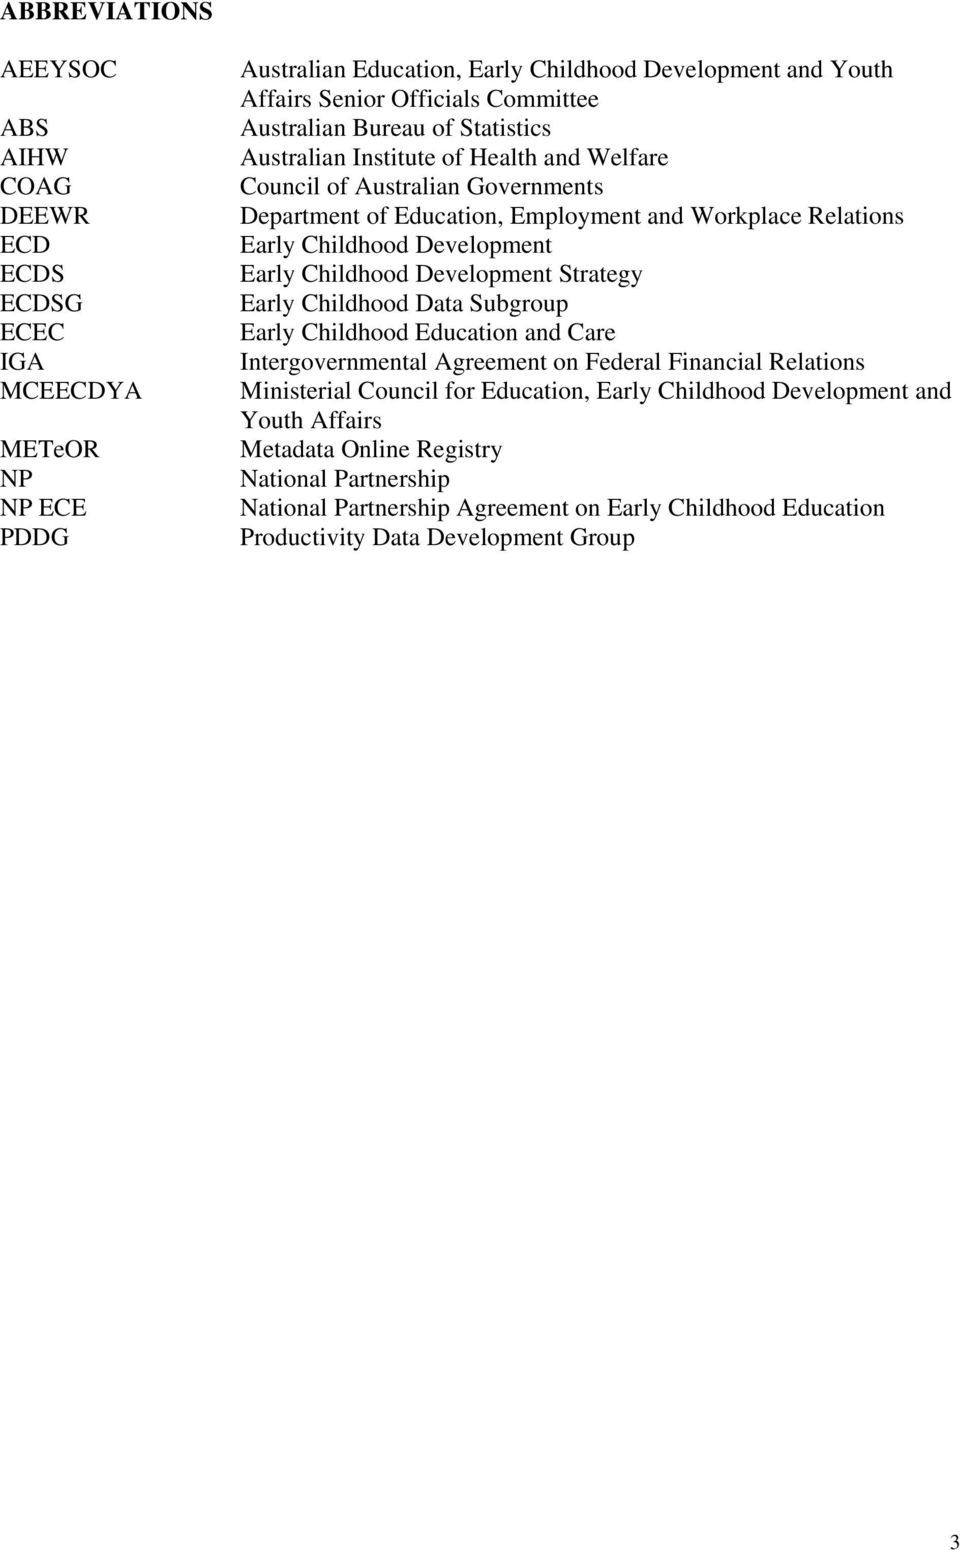 Development Early Childhood Development Strategy Early Childhood Data Subgroup Early Childhood Education and Care Intergovernmental Agreement on Federal Financial Relations Ministerial Council